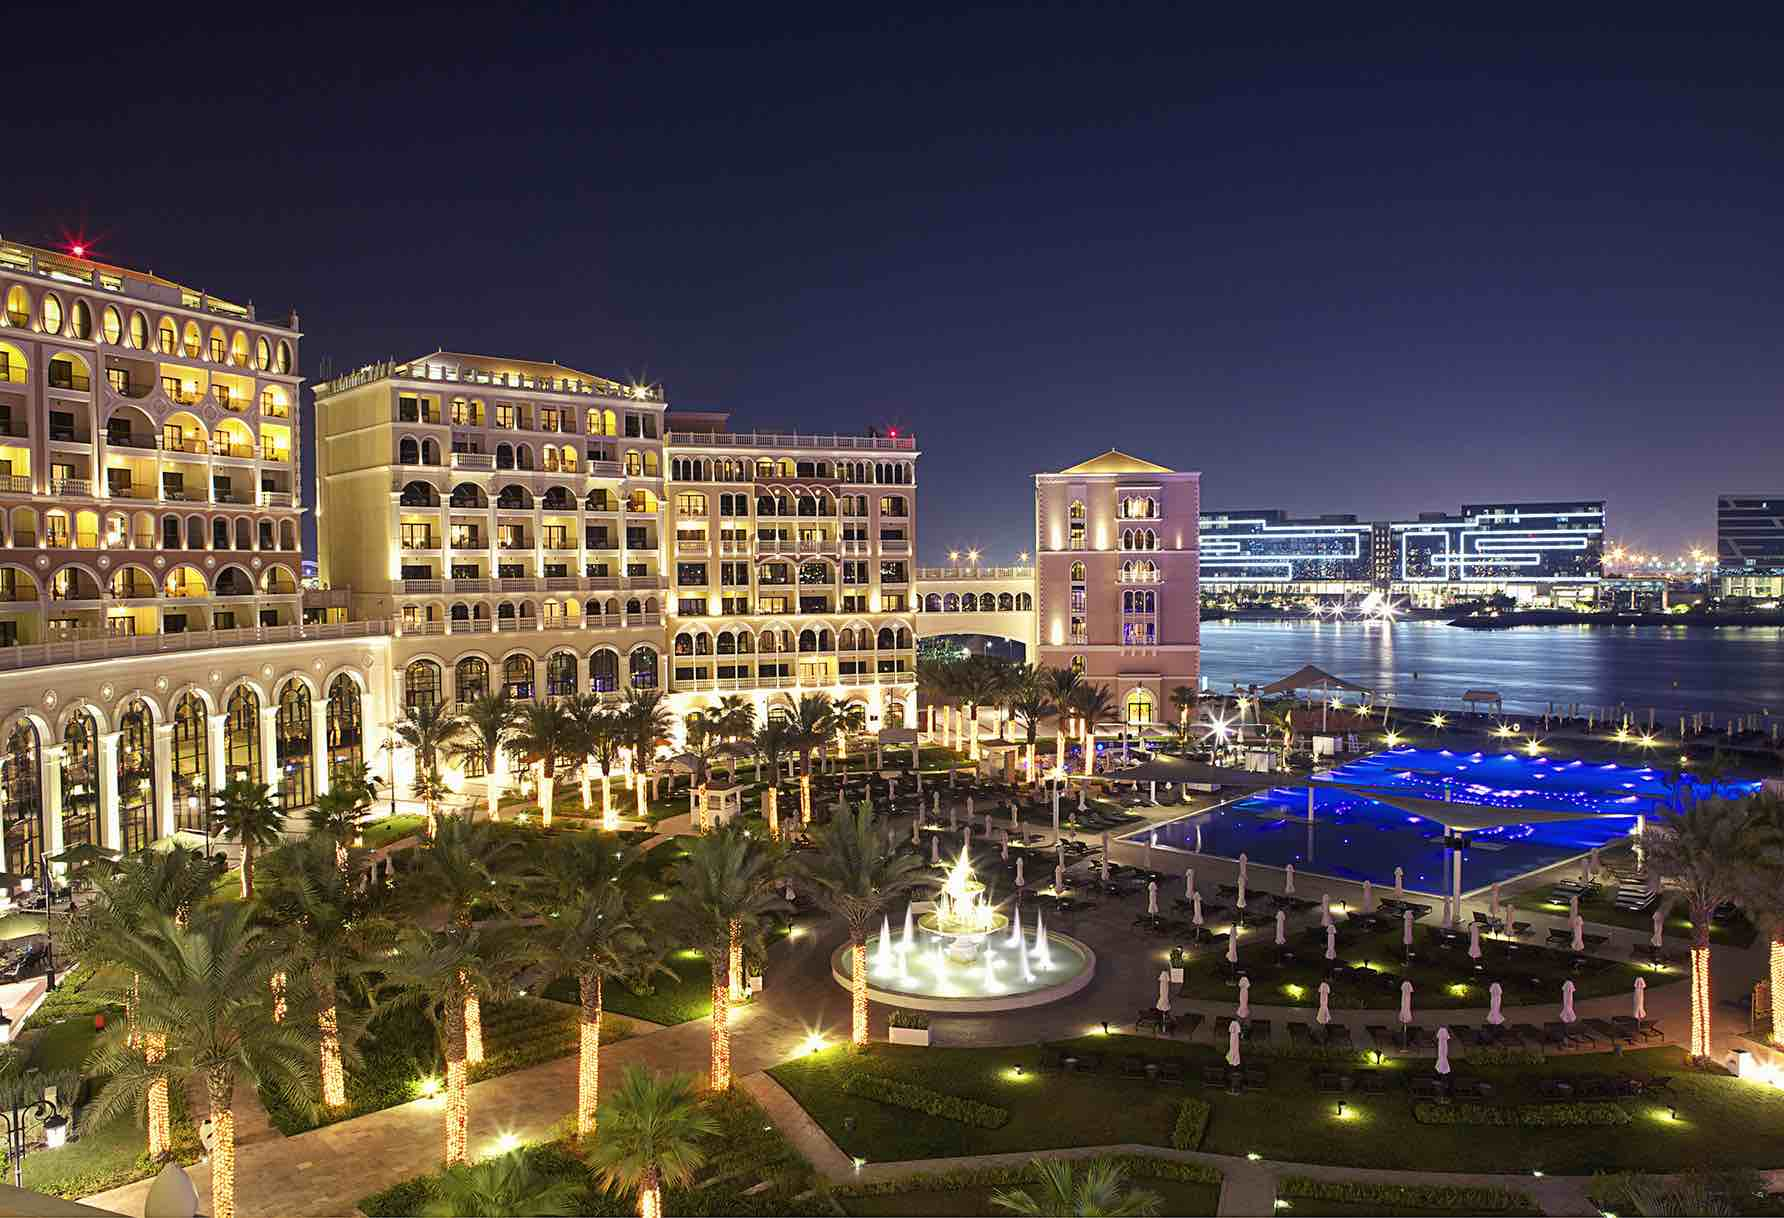 Ritz carlton abu dhabi at night